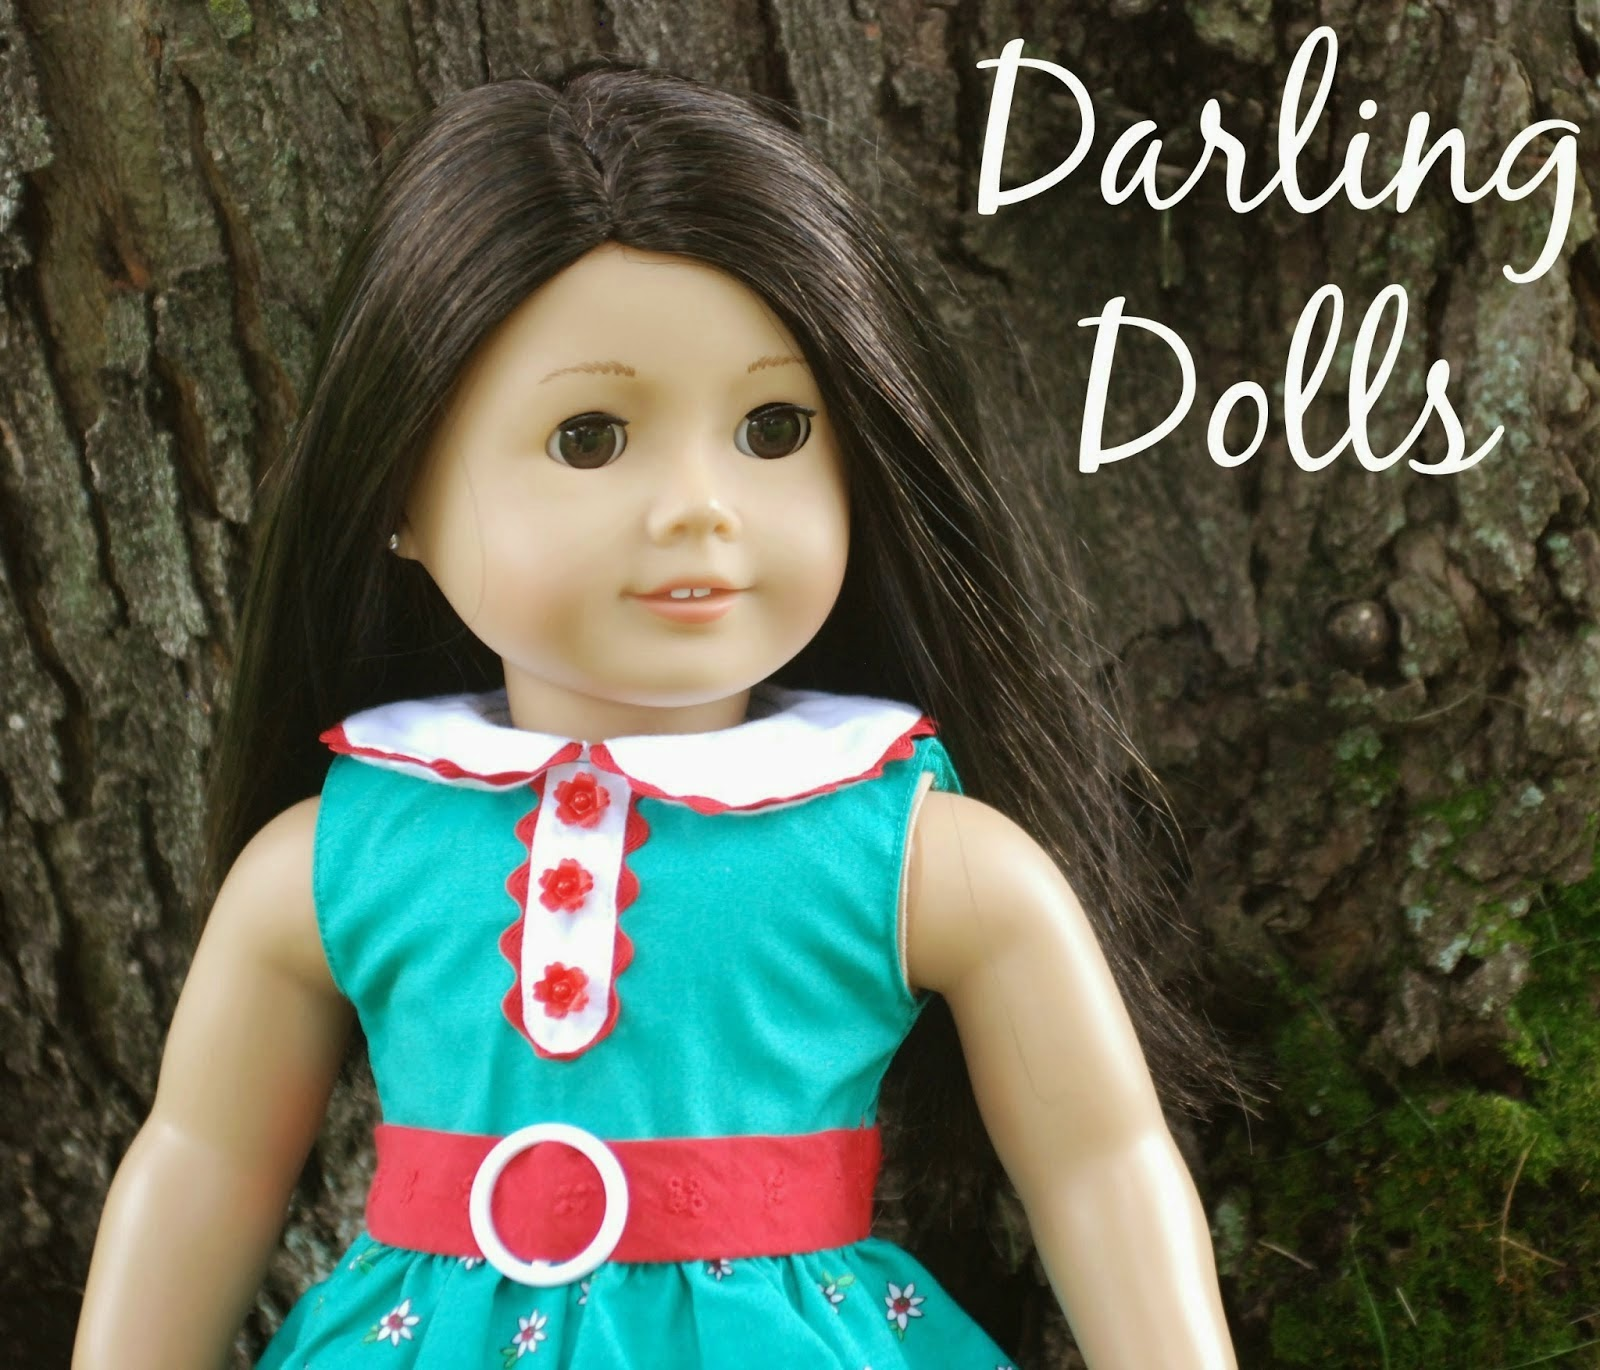 Darling Dolls